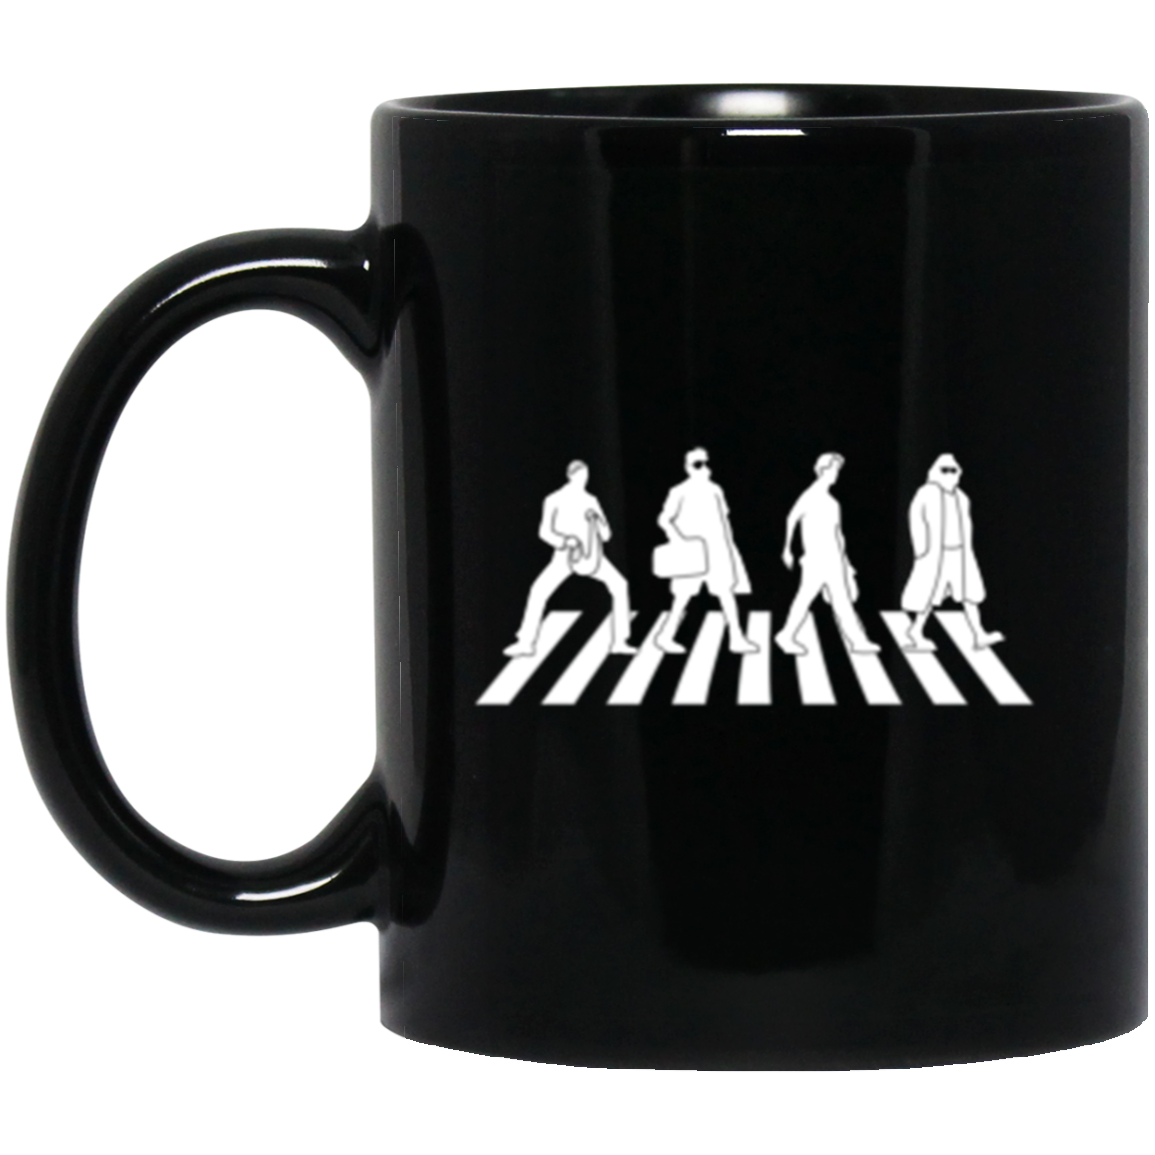 Abide Road Black Mug 11oz (2-sided)